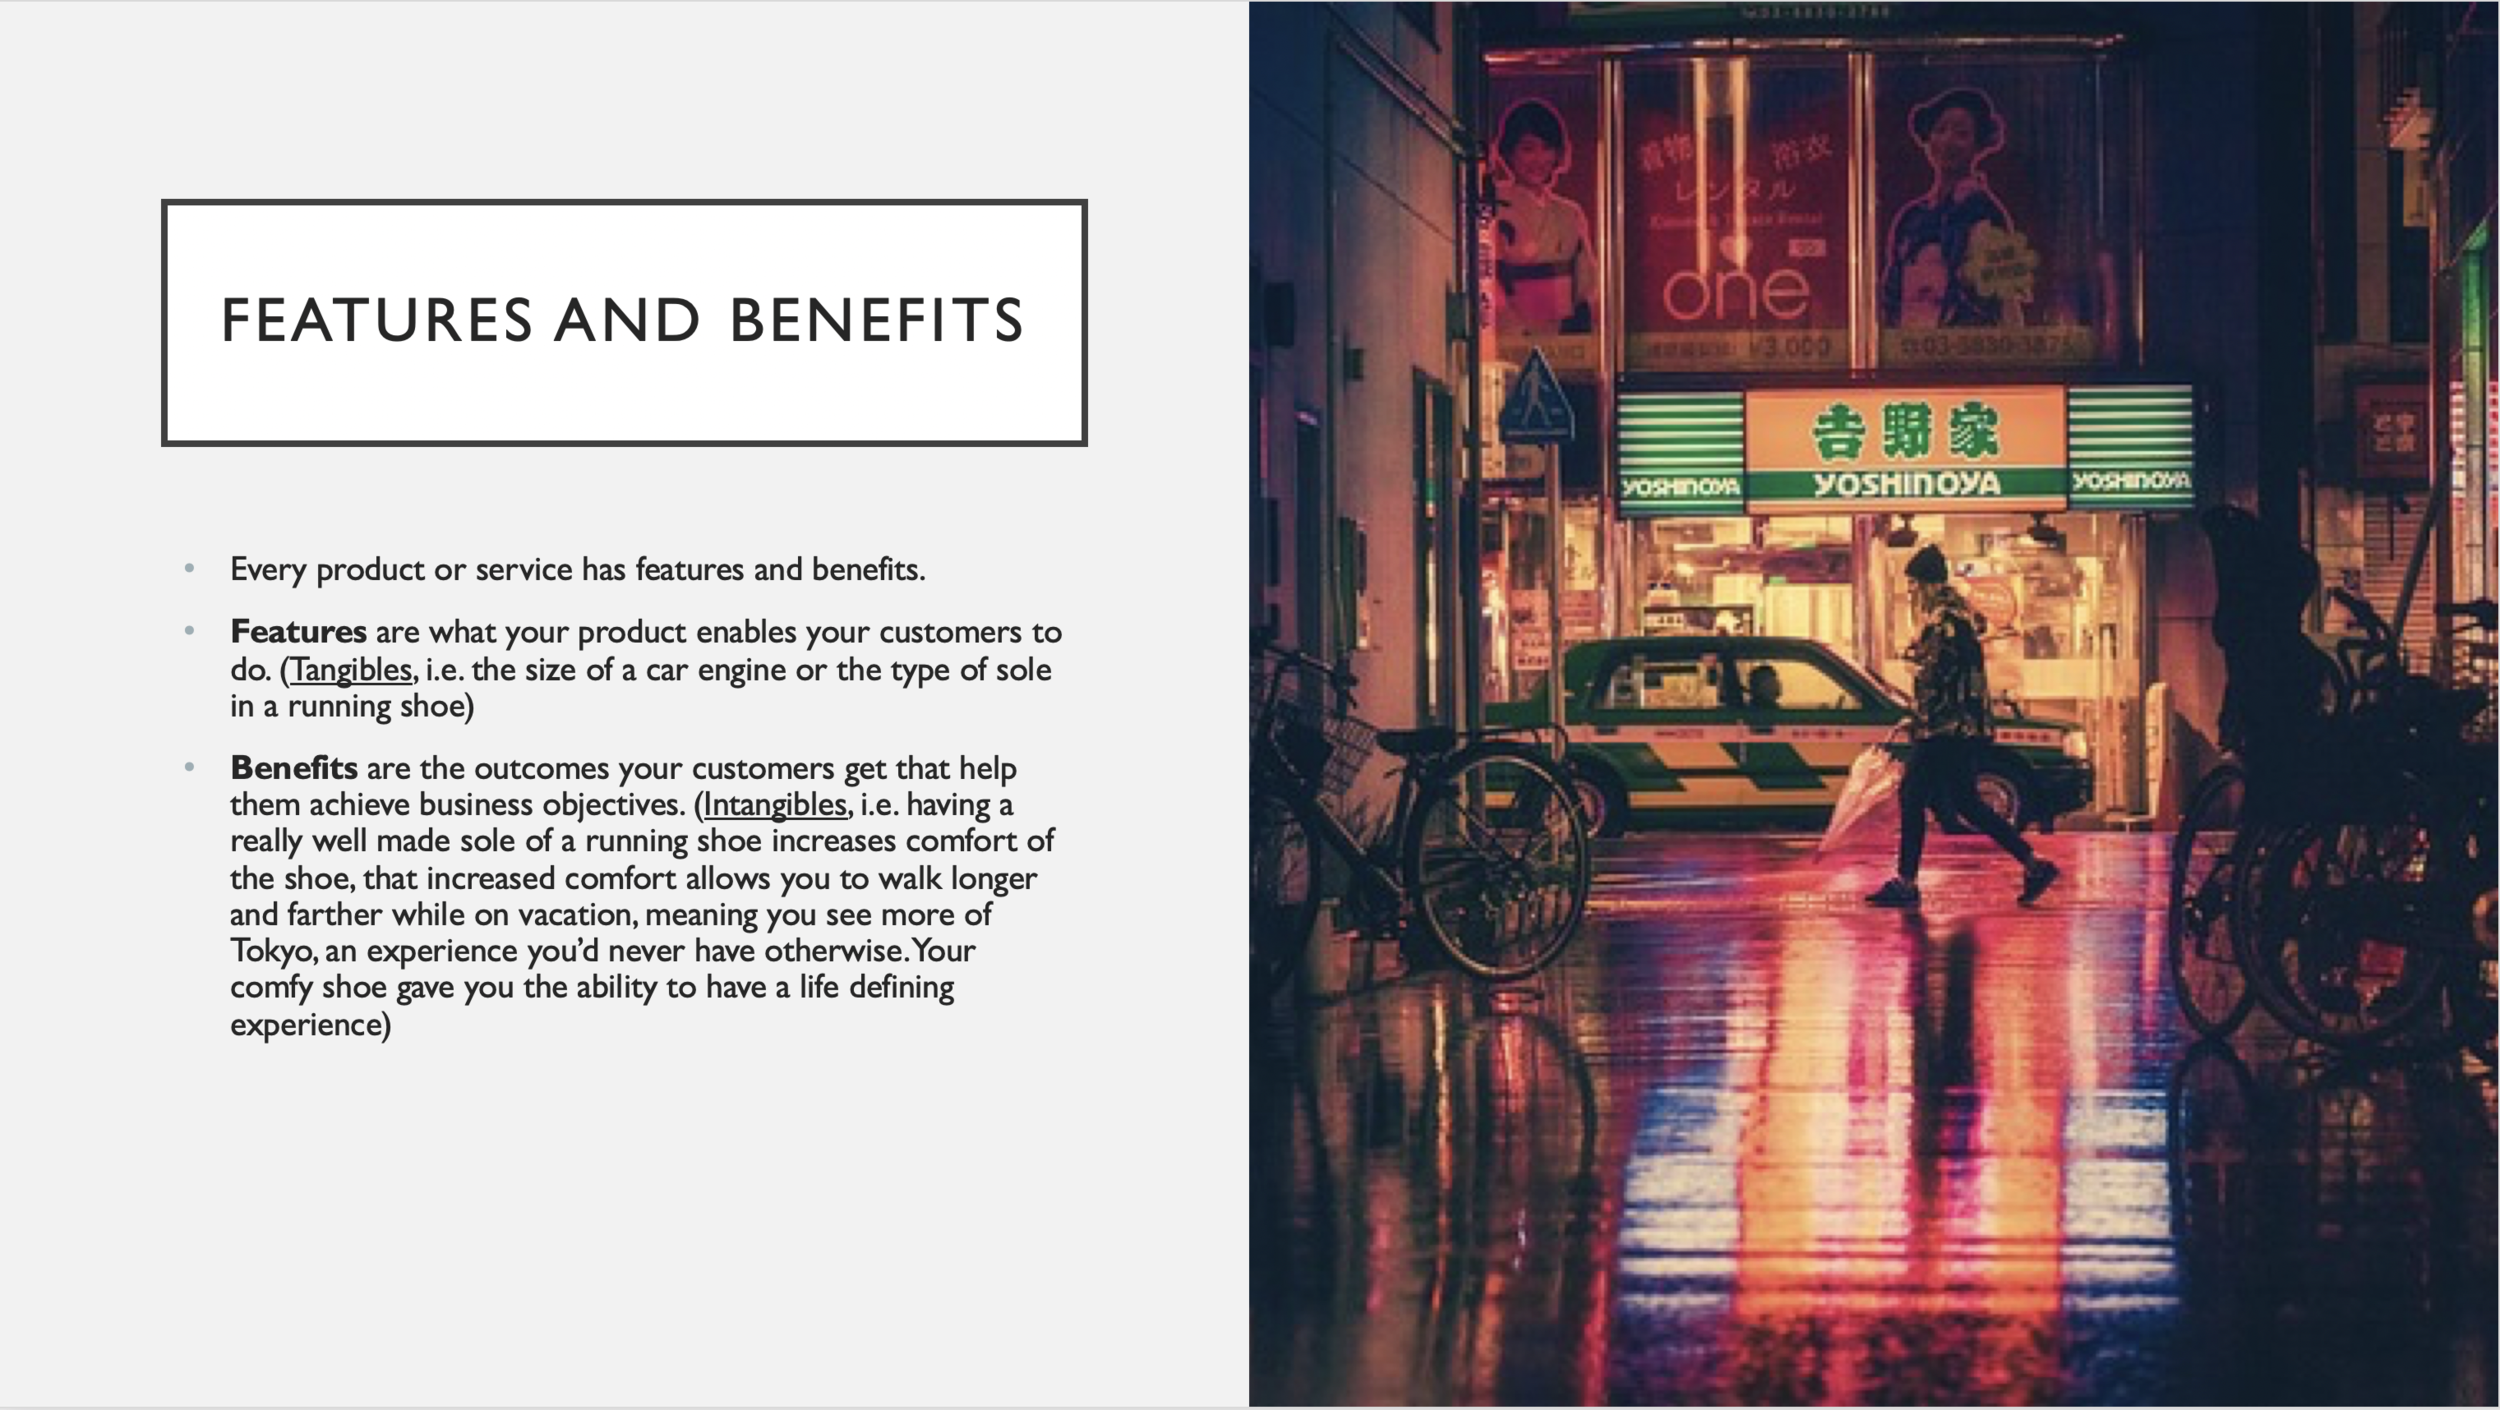 Features and Benefits Slide